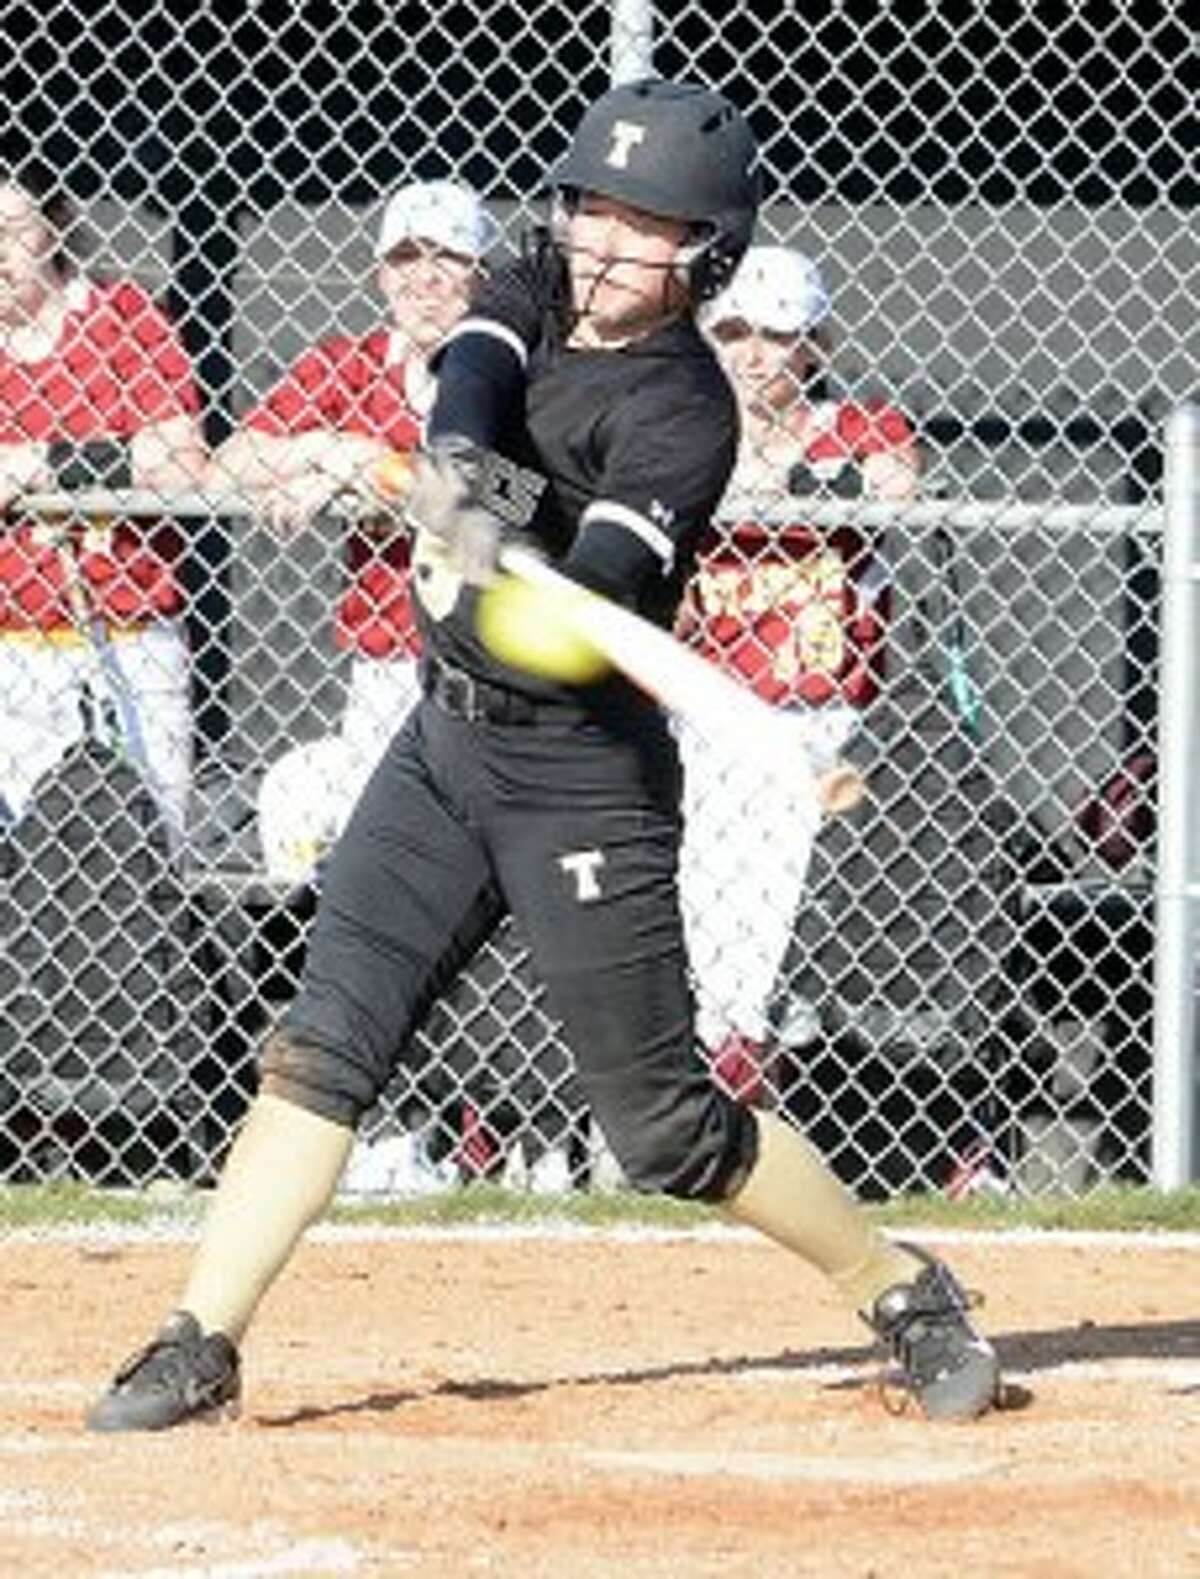 Briana Giacobbe had a two-run triple for Trumbull. - Andy Hutchison photo